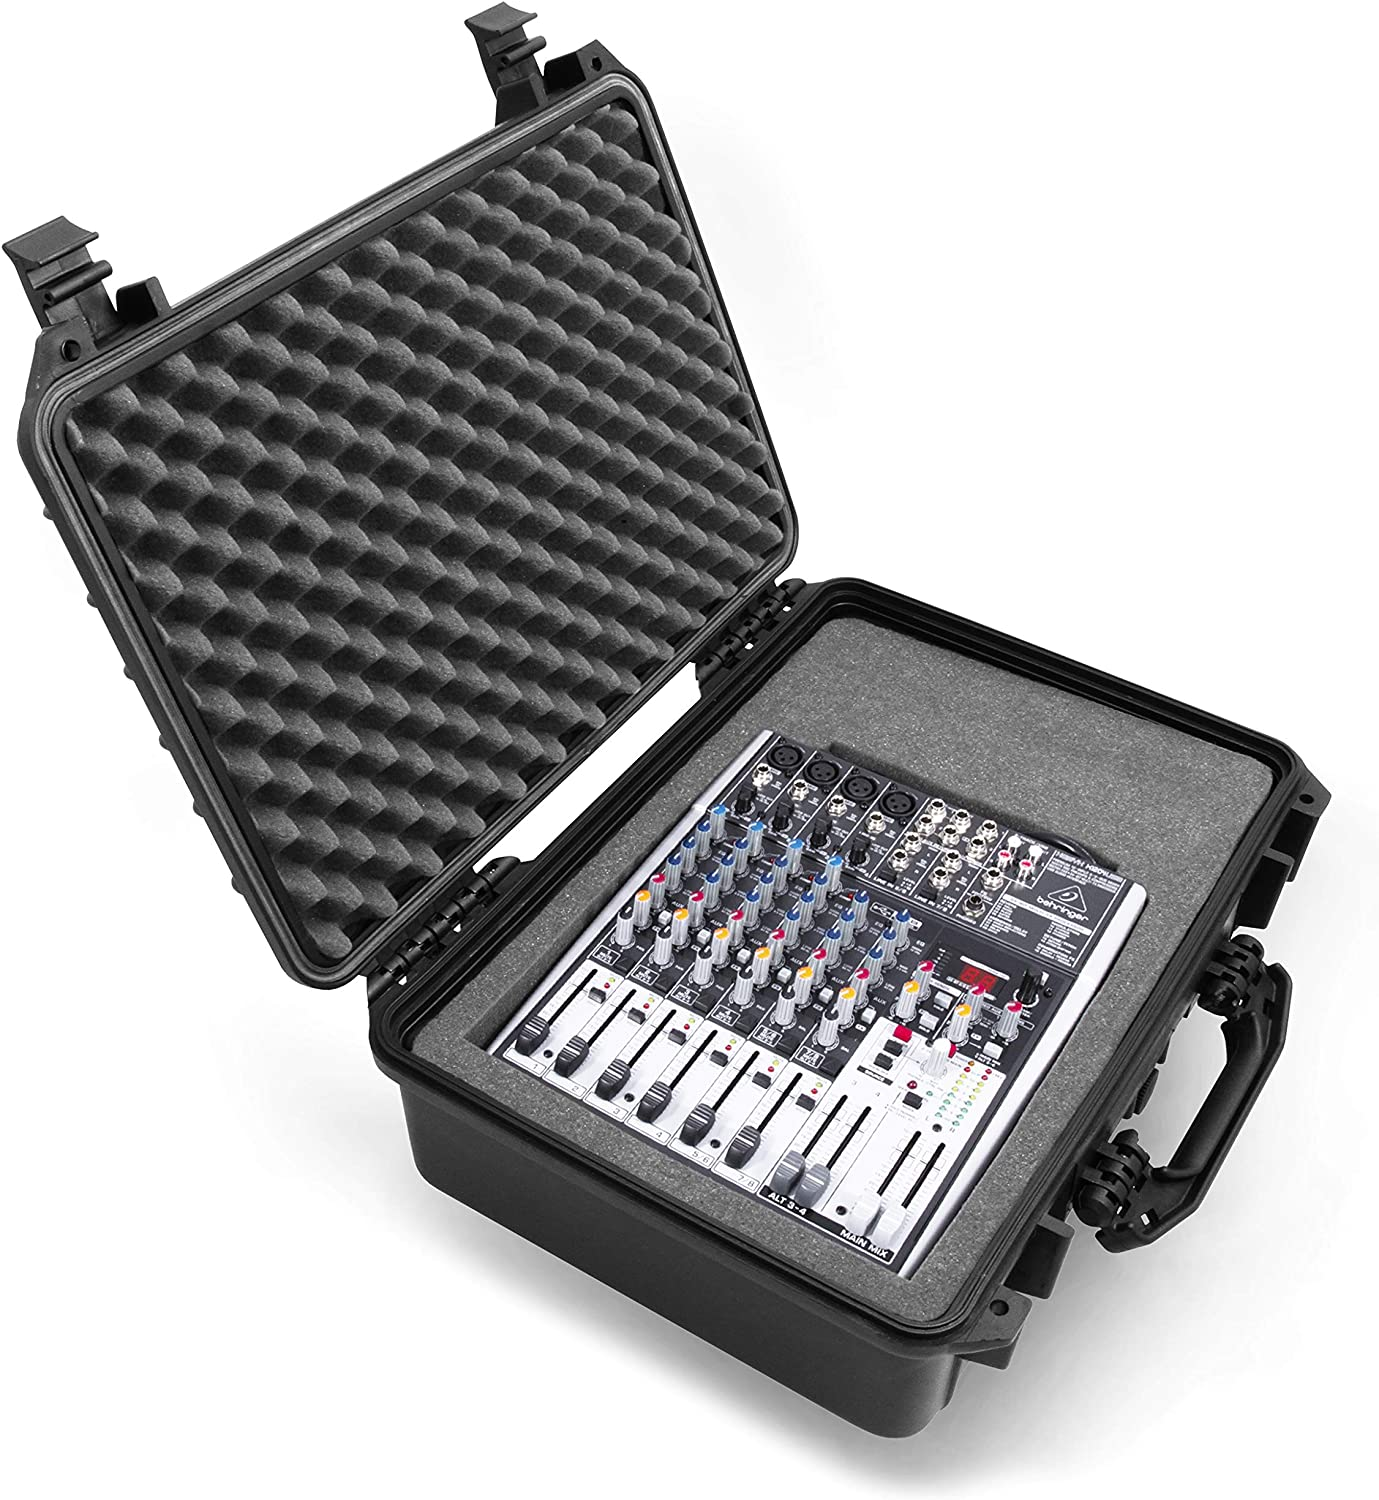 Casematix Waterproof 18 店内全品対象 inch Mixer with Compatible Case Carrying おしゃれ